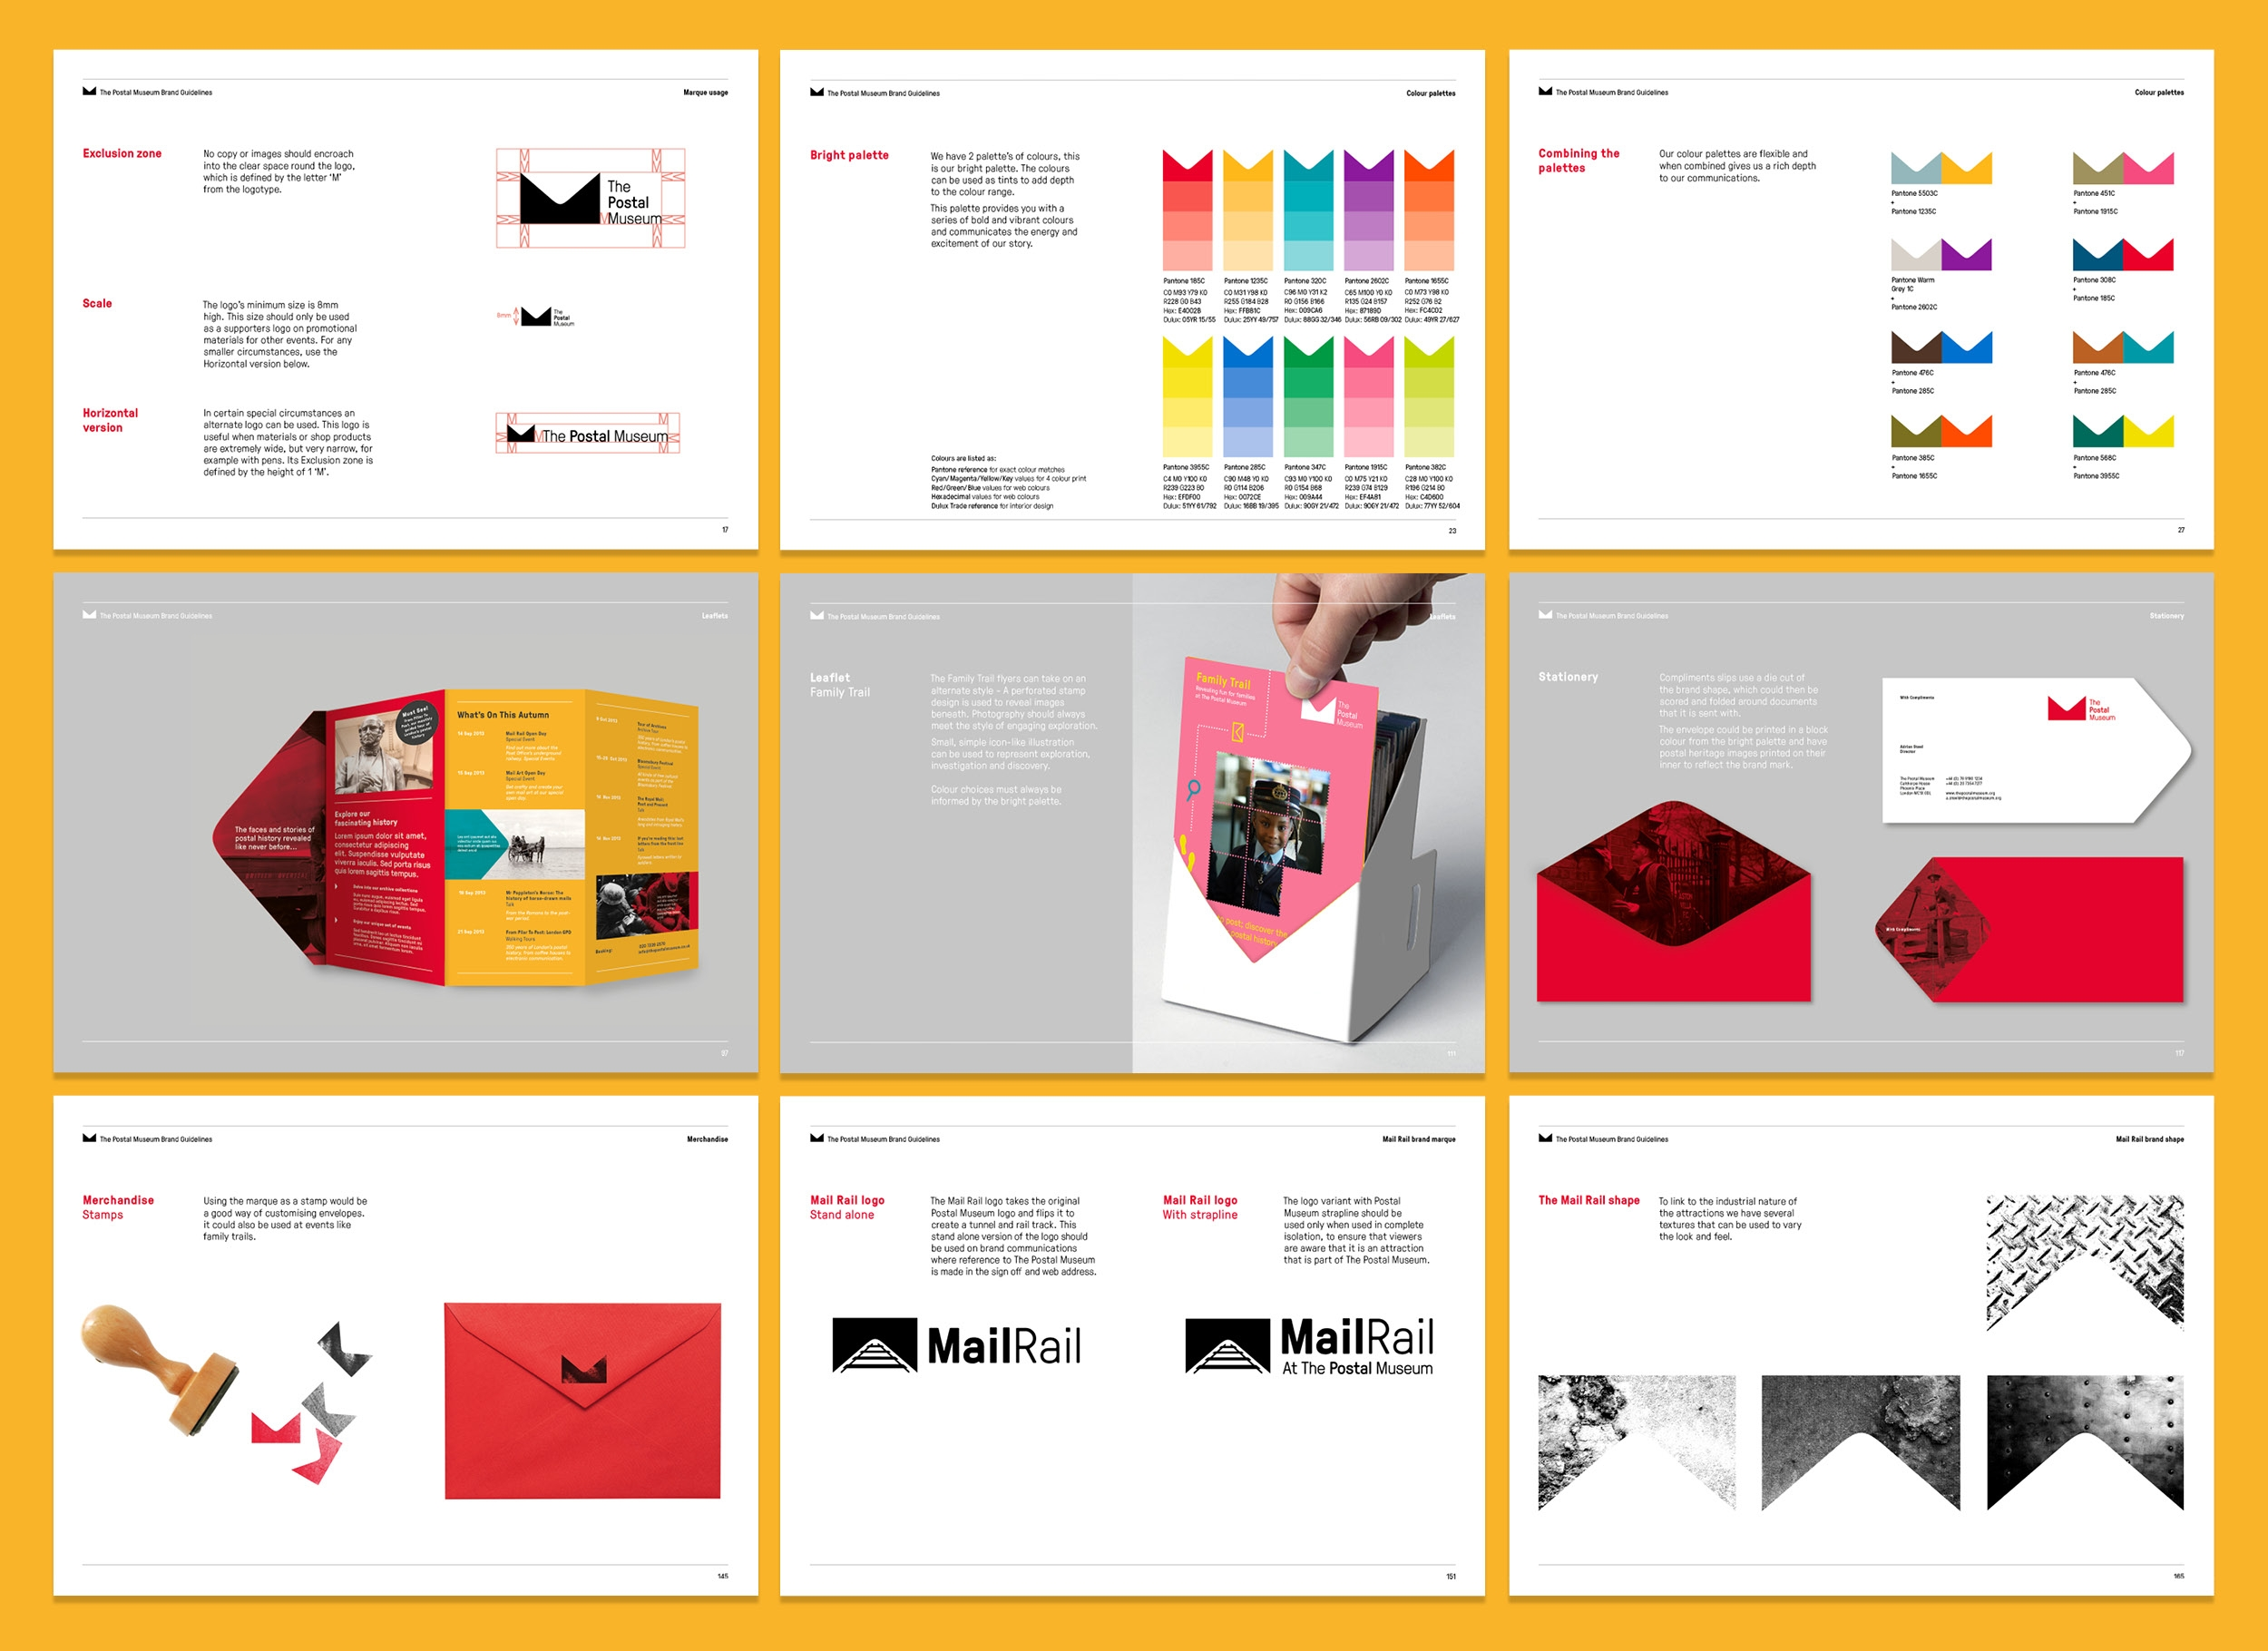 Museum branding, brand guidelines, brand values and tone of voice for The Postal Museum by Altogether Creative.